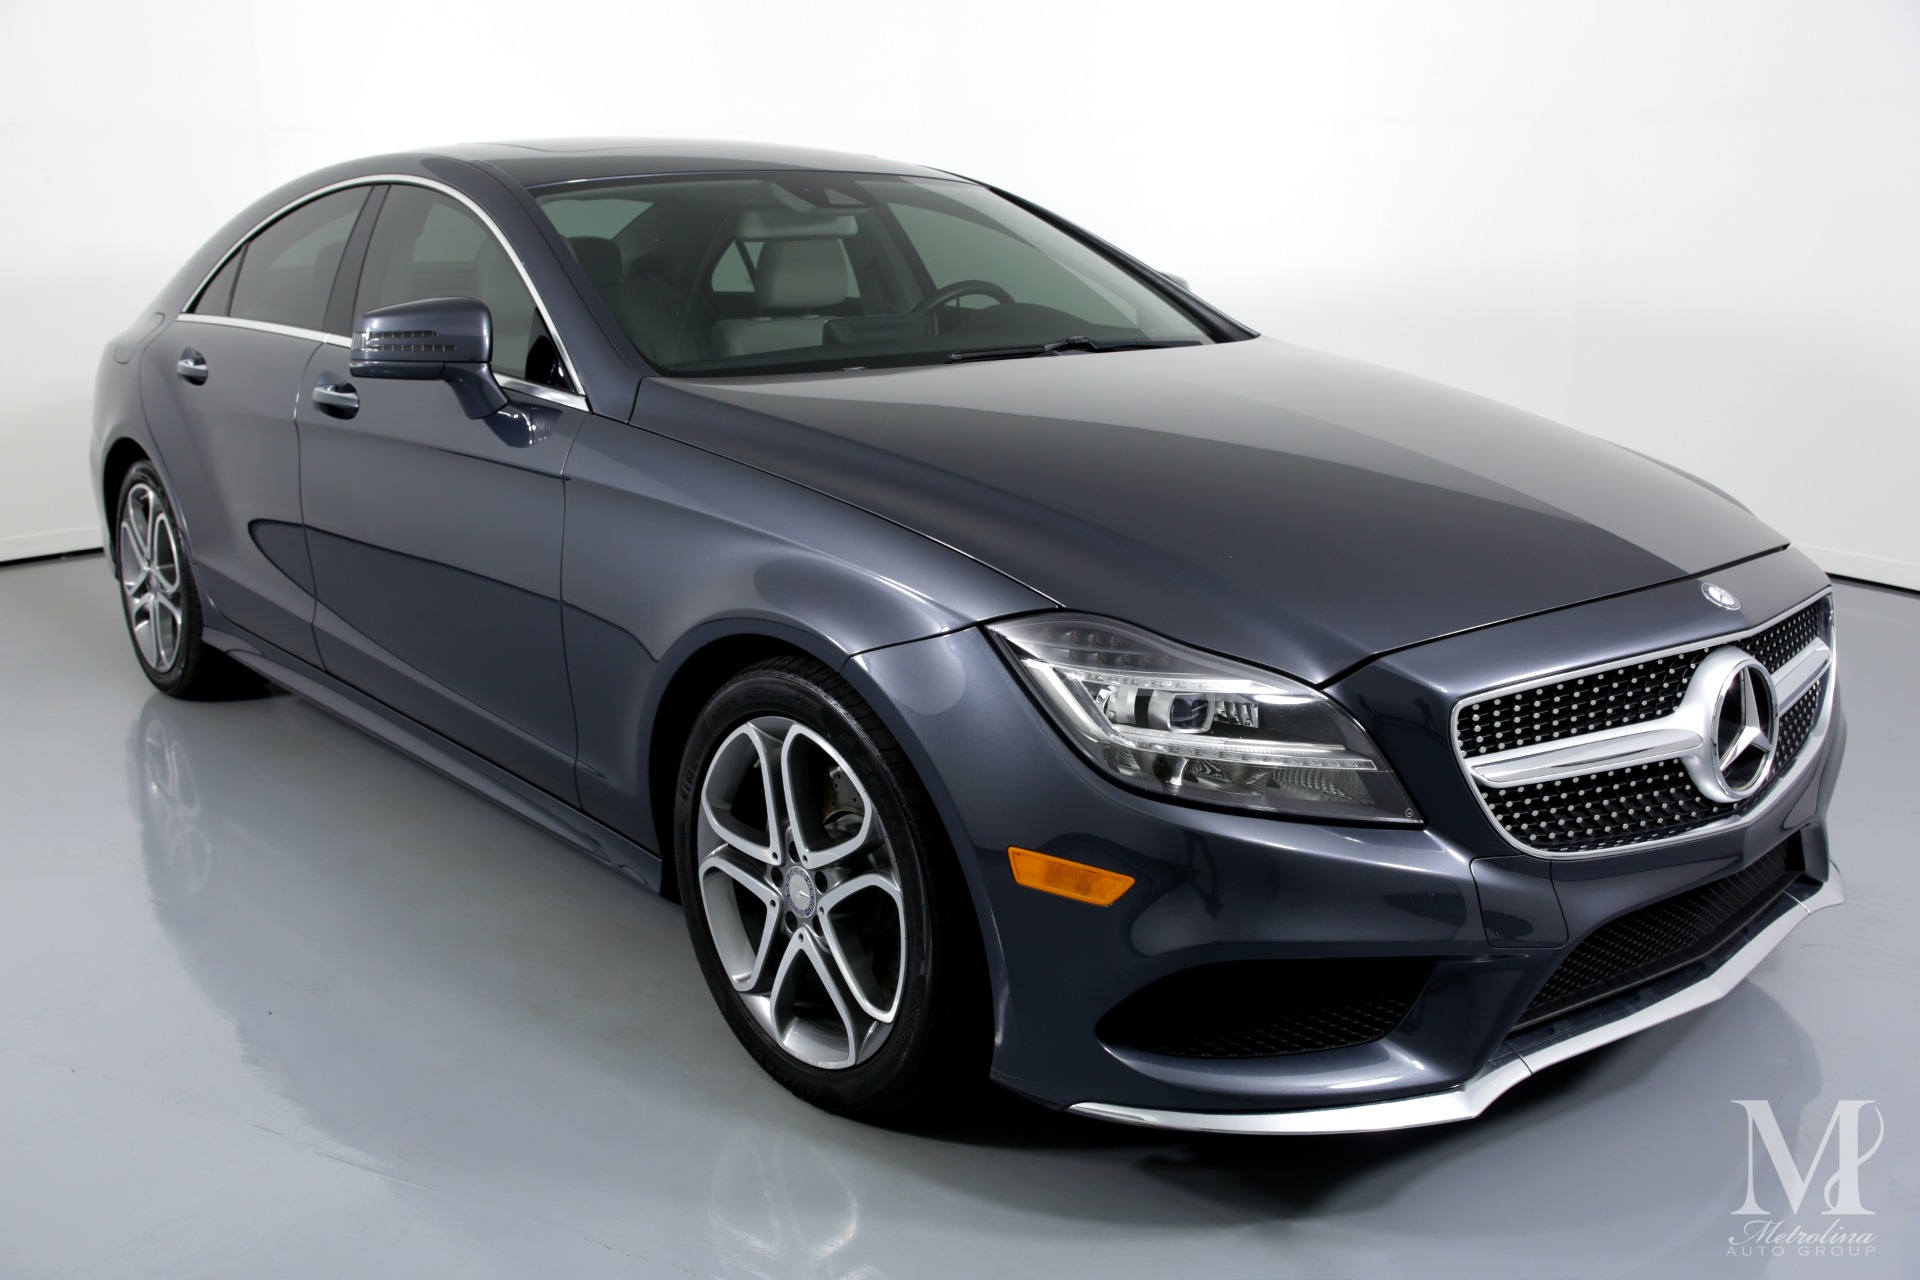 Used 2015 Mercedes-Benz CLS CLS 400 4dr Sedan for sale $29,996 at Metrolina Auto Group in Charlotte NC 28217 - 2